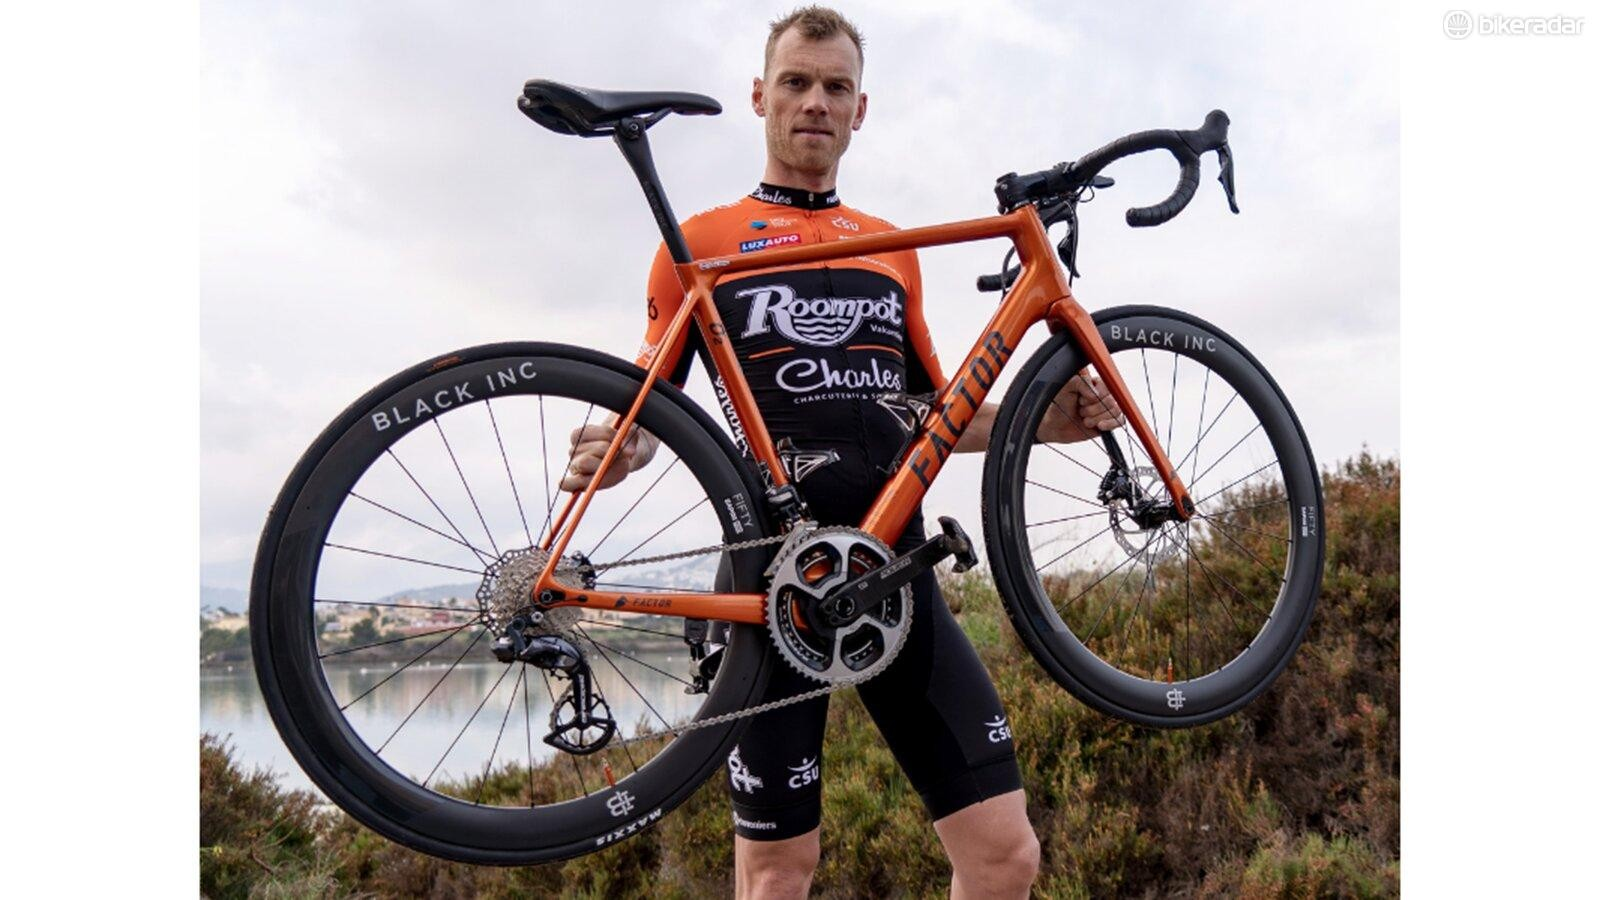 Lars Boom shows off the Roompot-Charles 2019 Factor O2 Disc